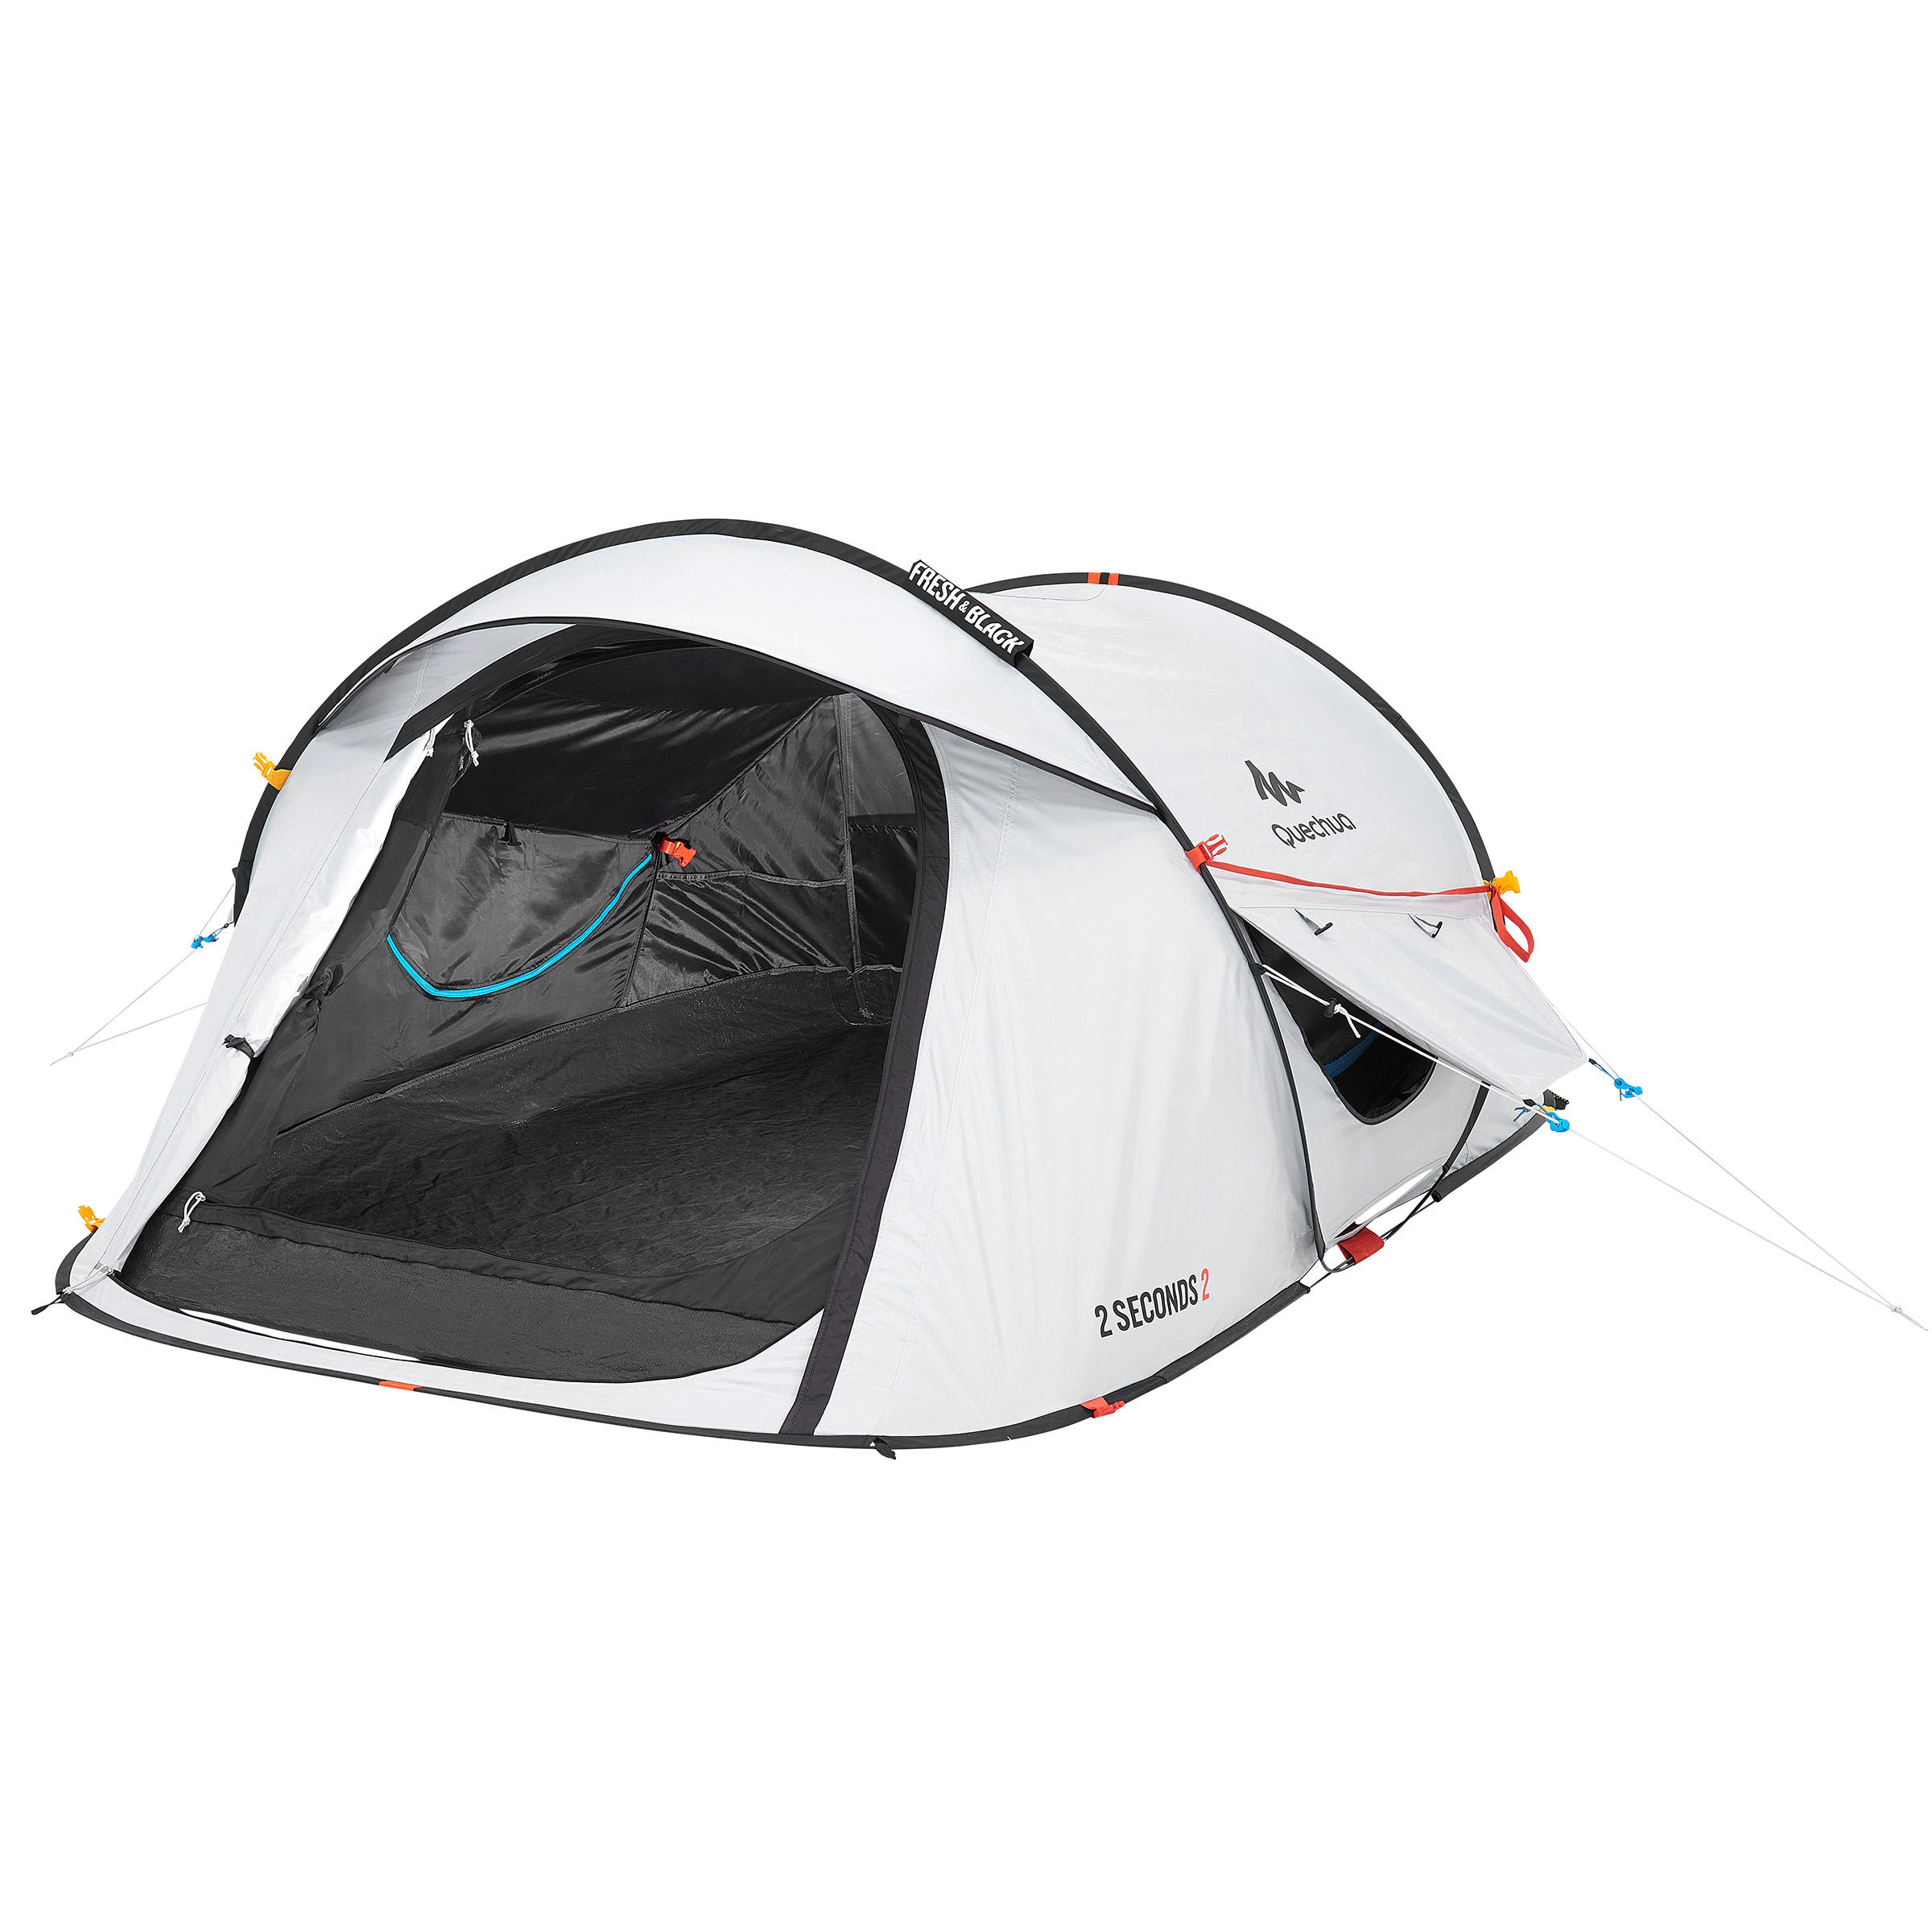 2 Seconds Fresh&Black 2 Person Camping Tent - White